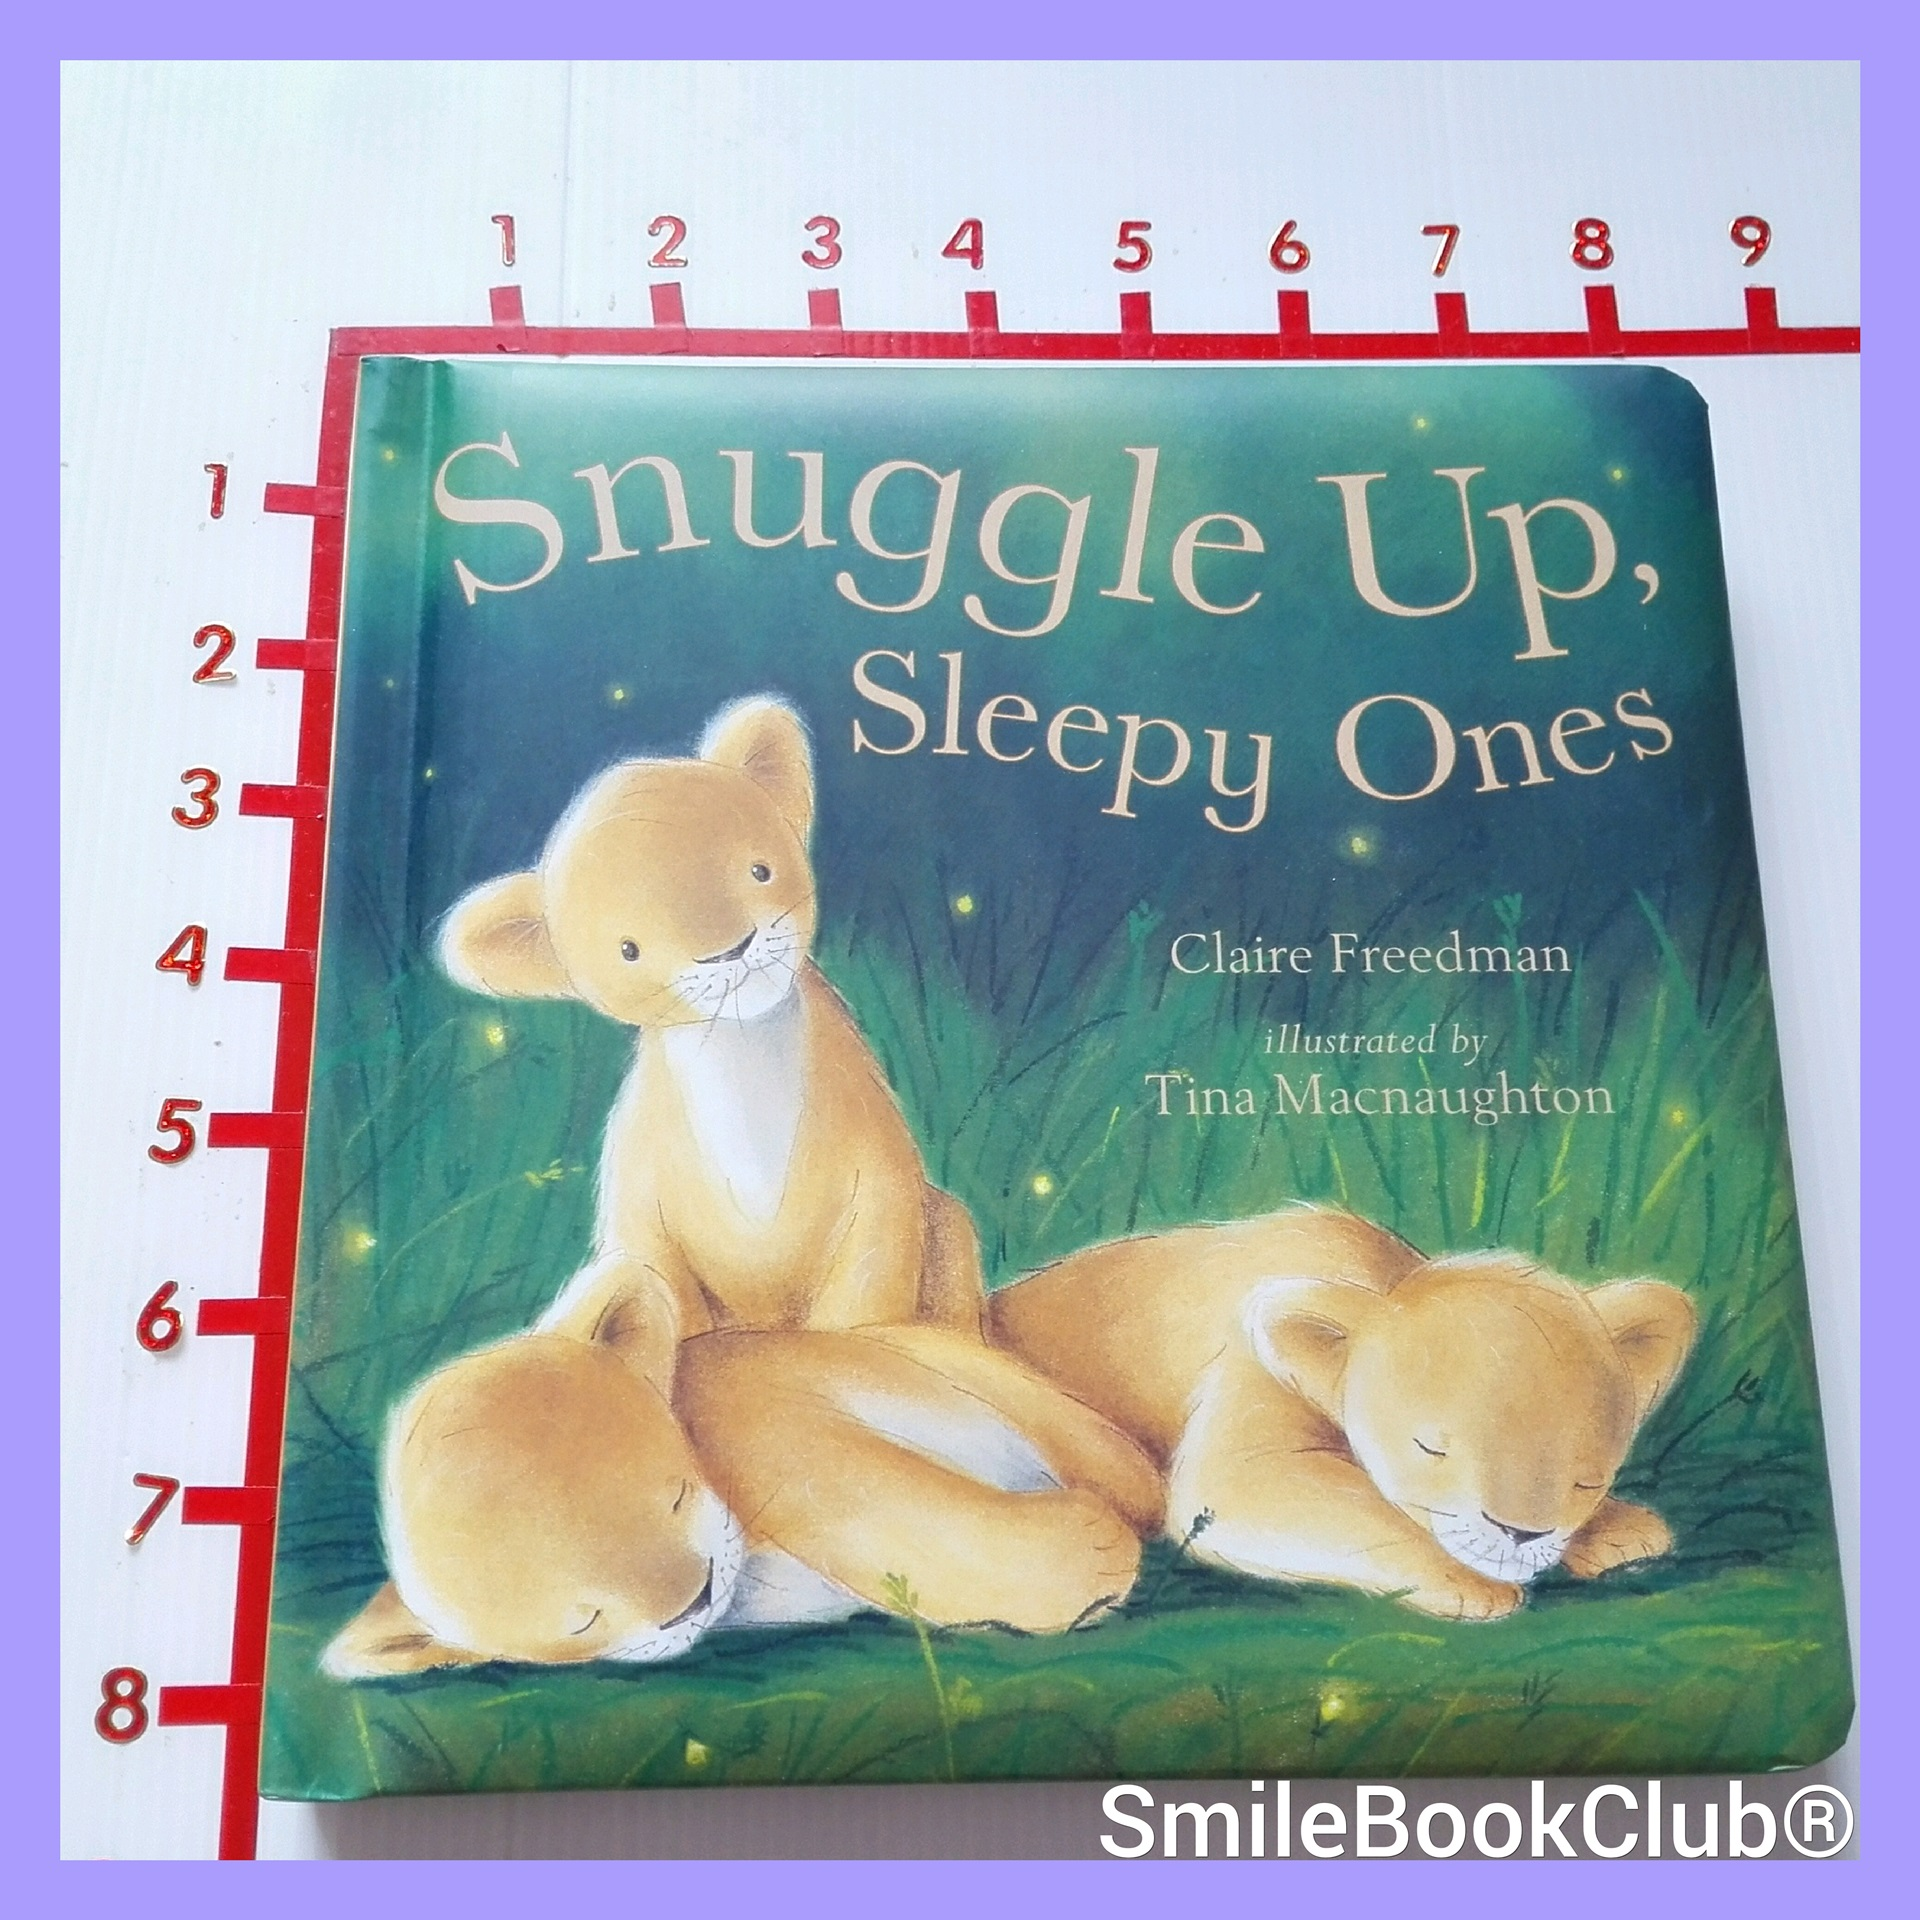 Snuggle Up, Sleepy Ones